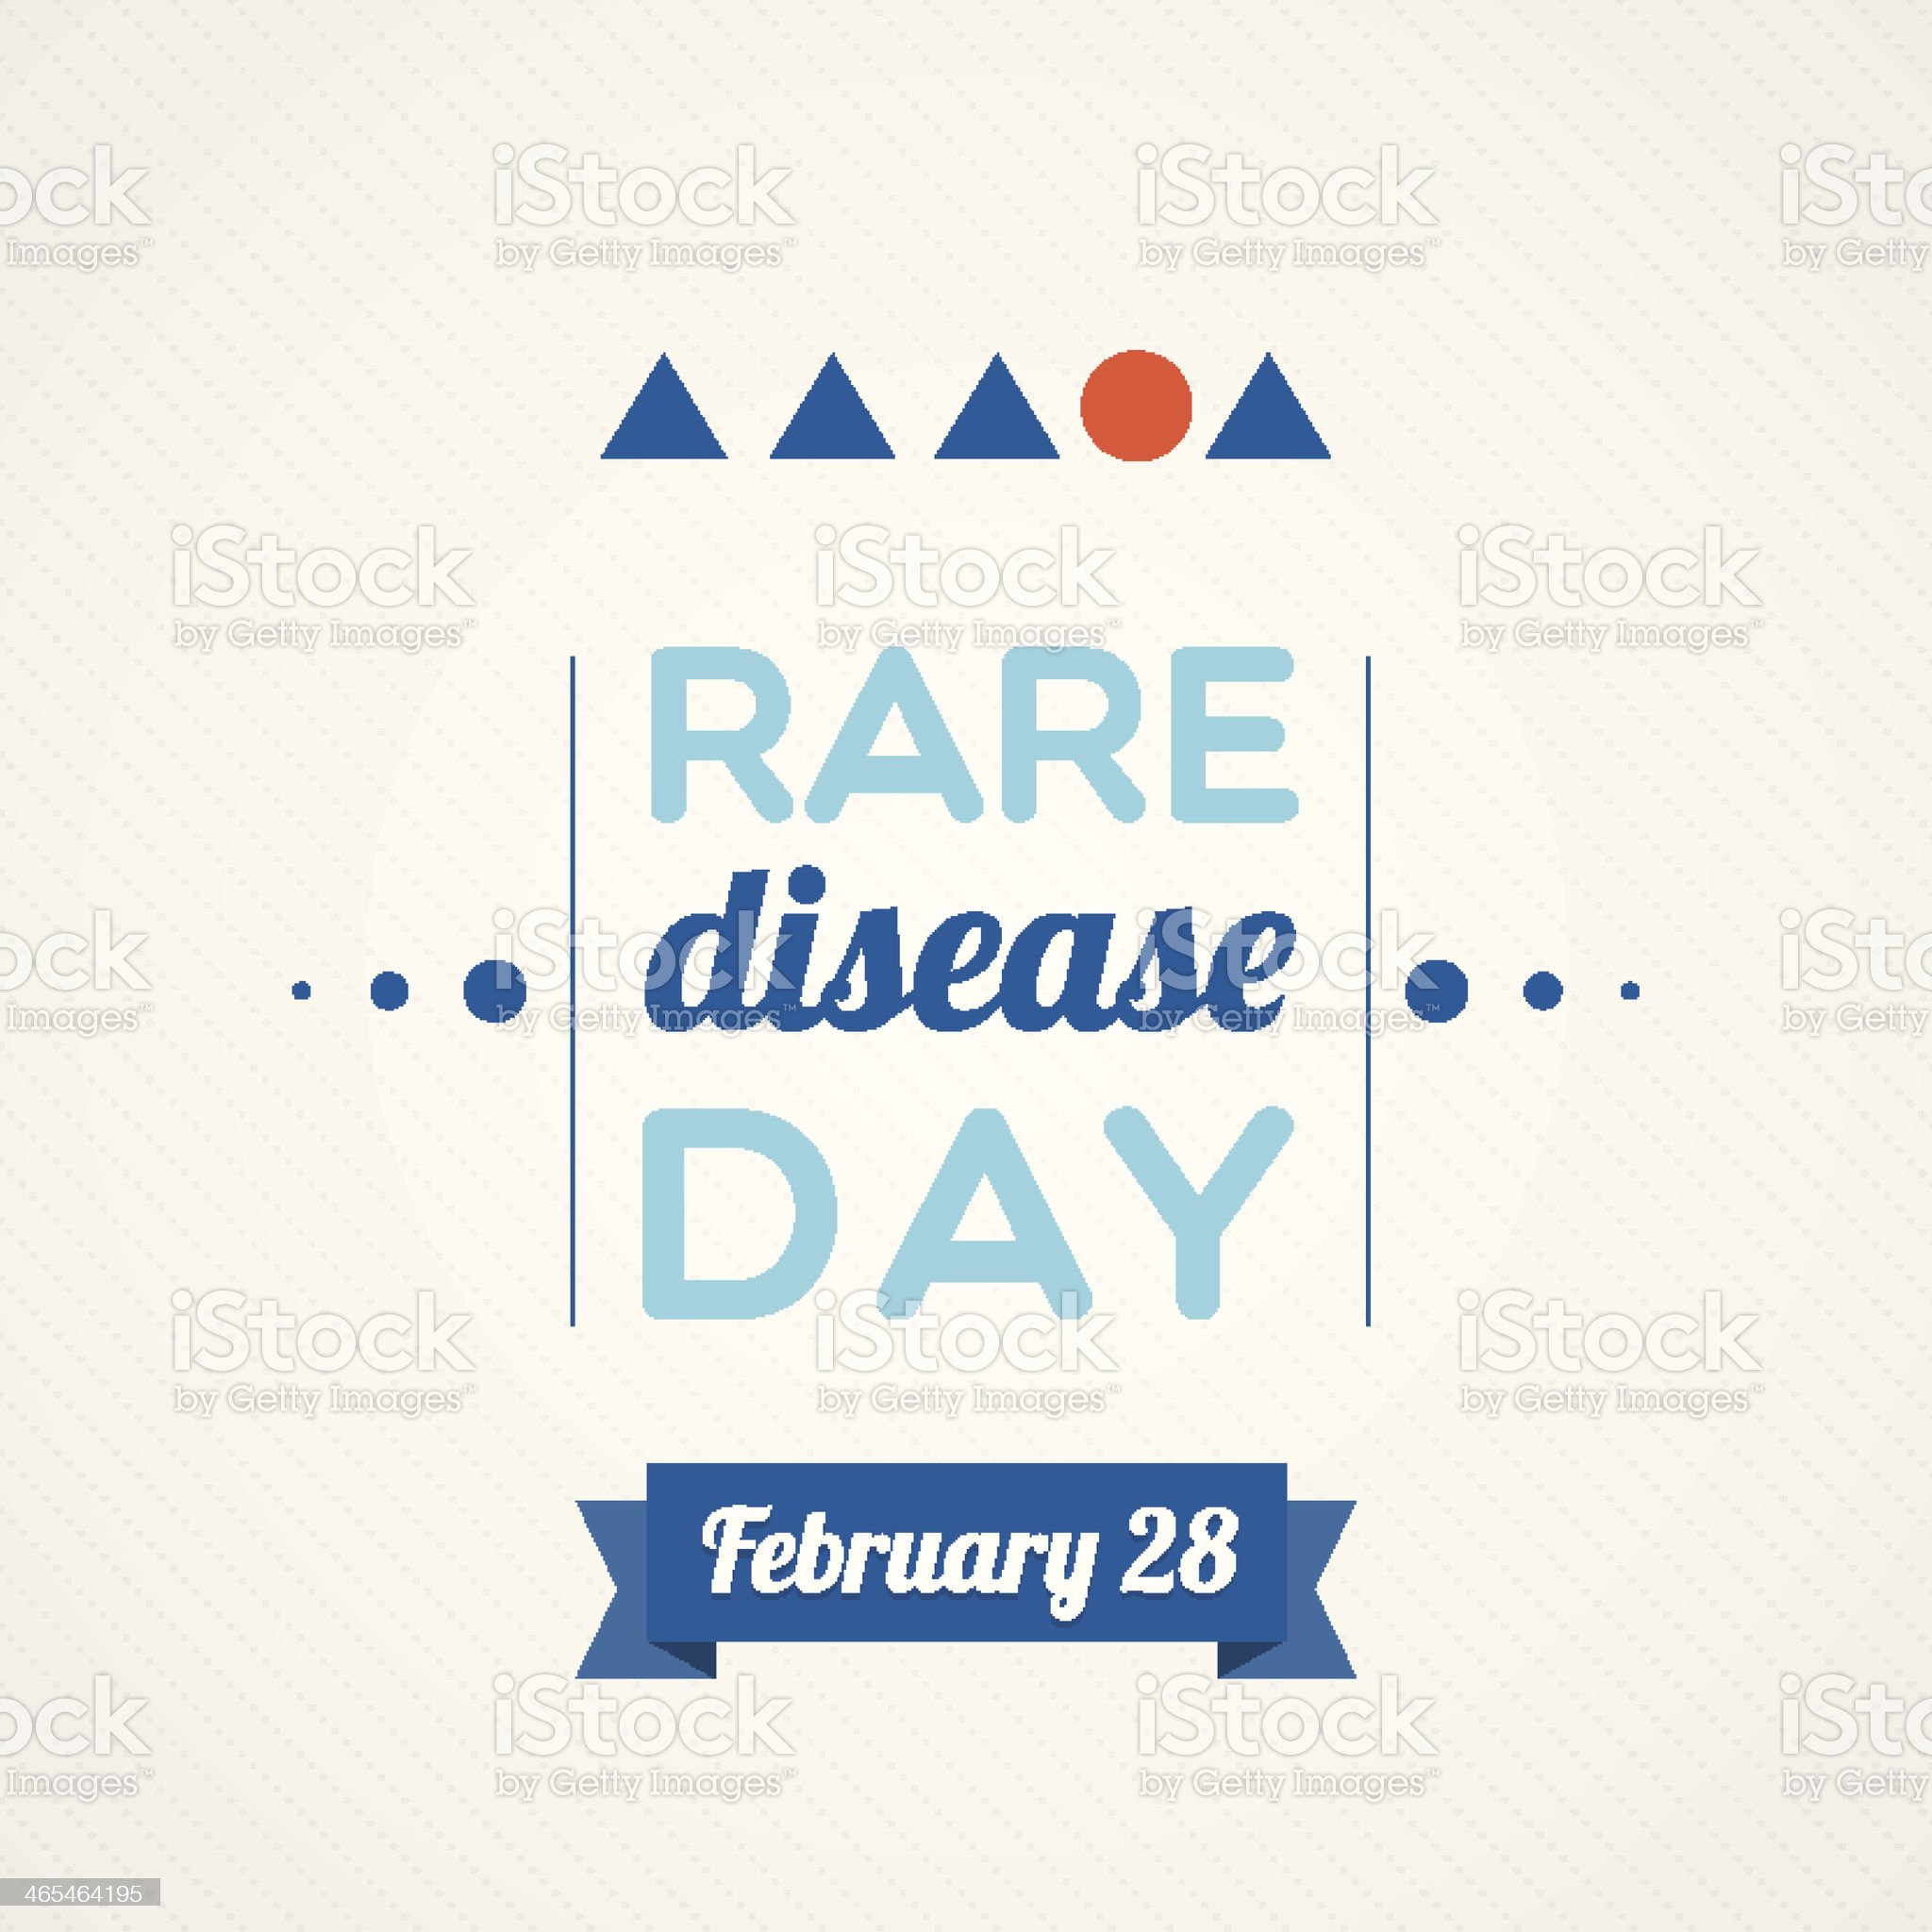 Rare Disease Day royalty-free stock vector art